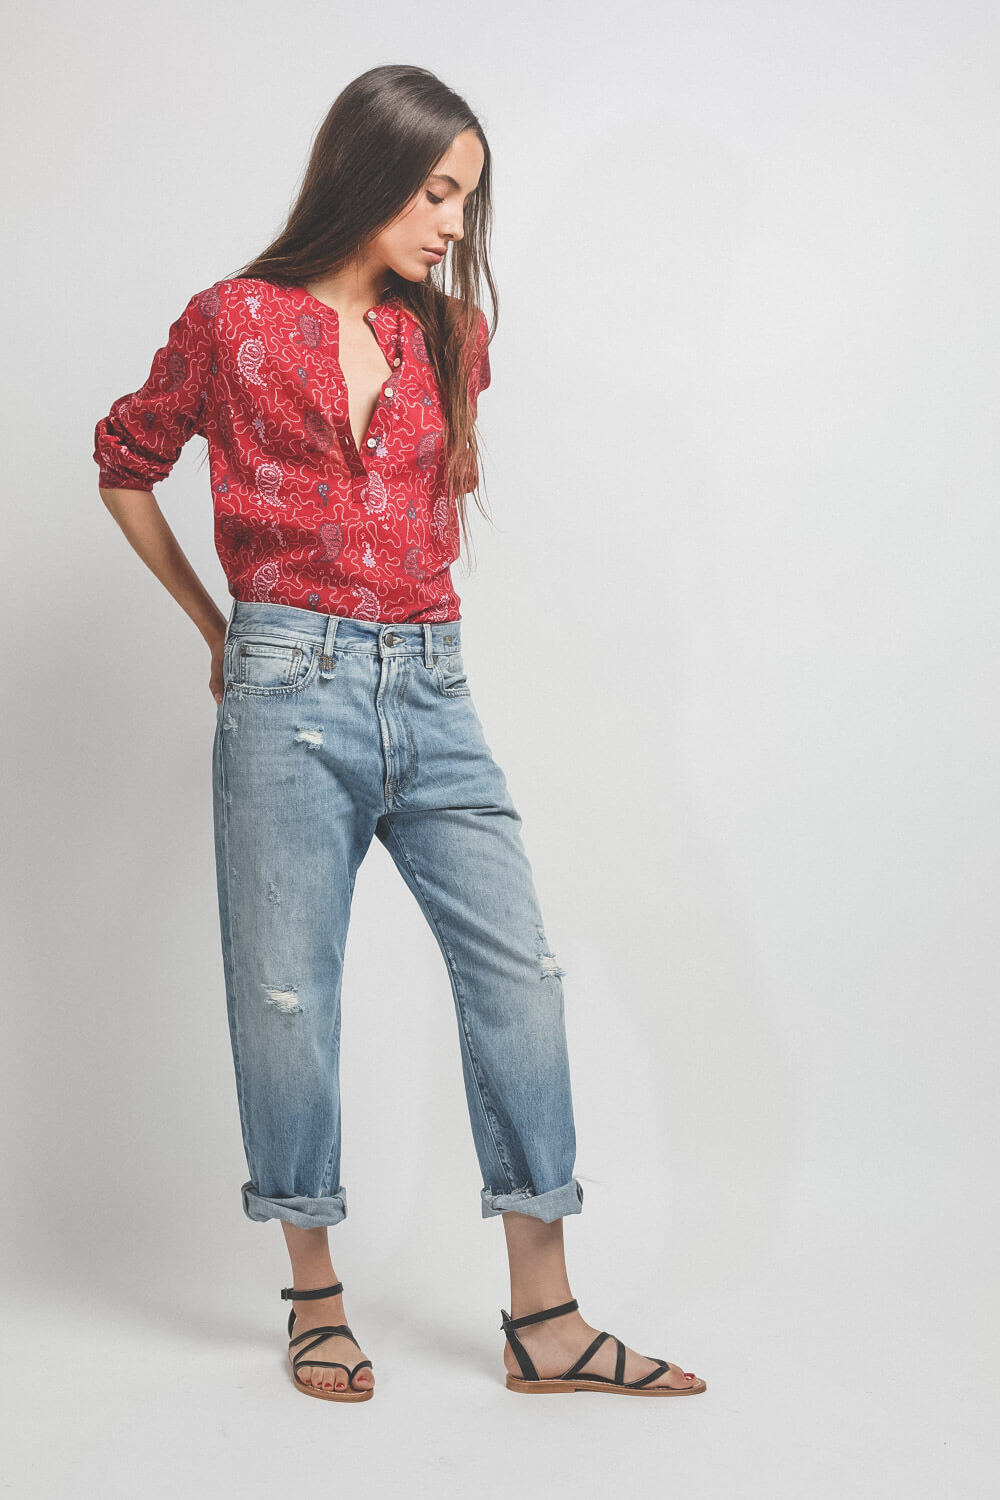 Isabel Marant Etoile Top Maria - Red